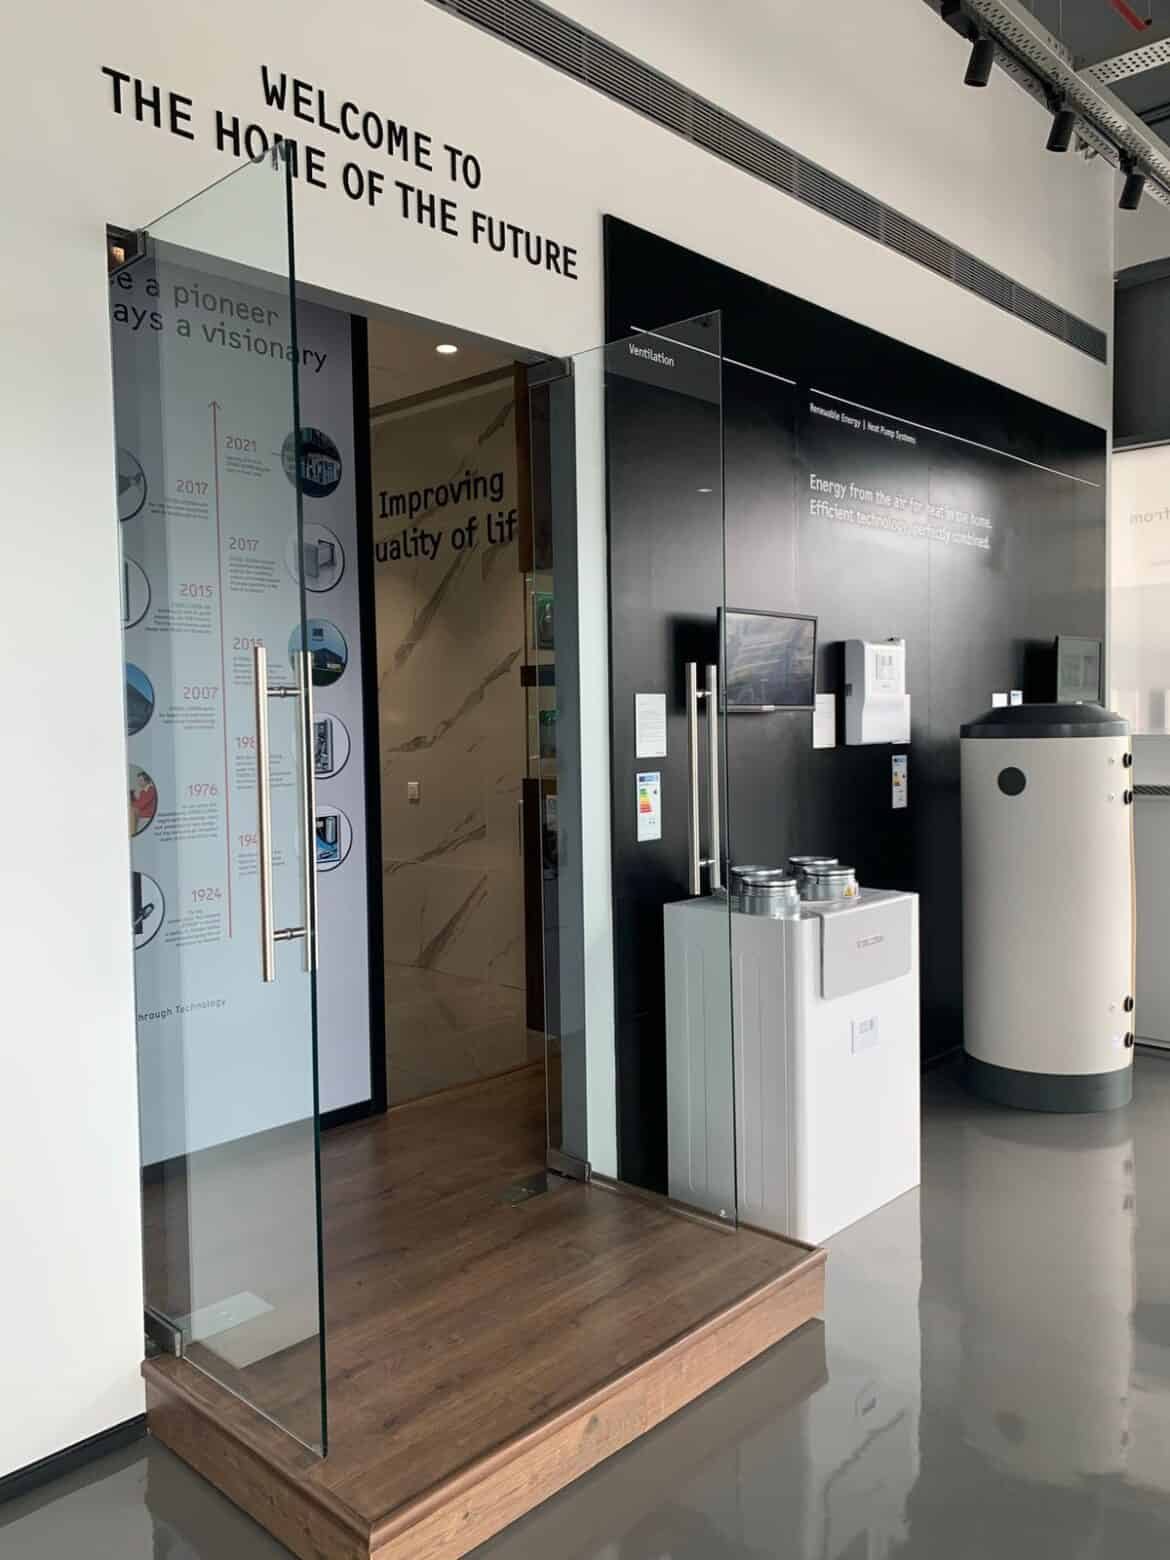 stiebel eltron display centre with green technology and other products